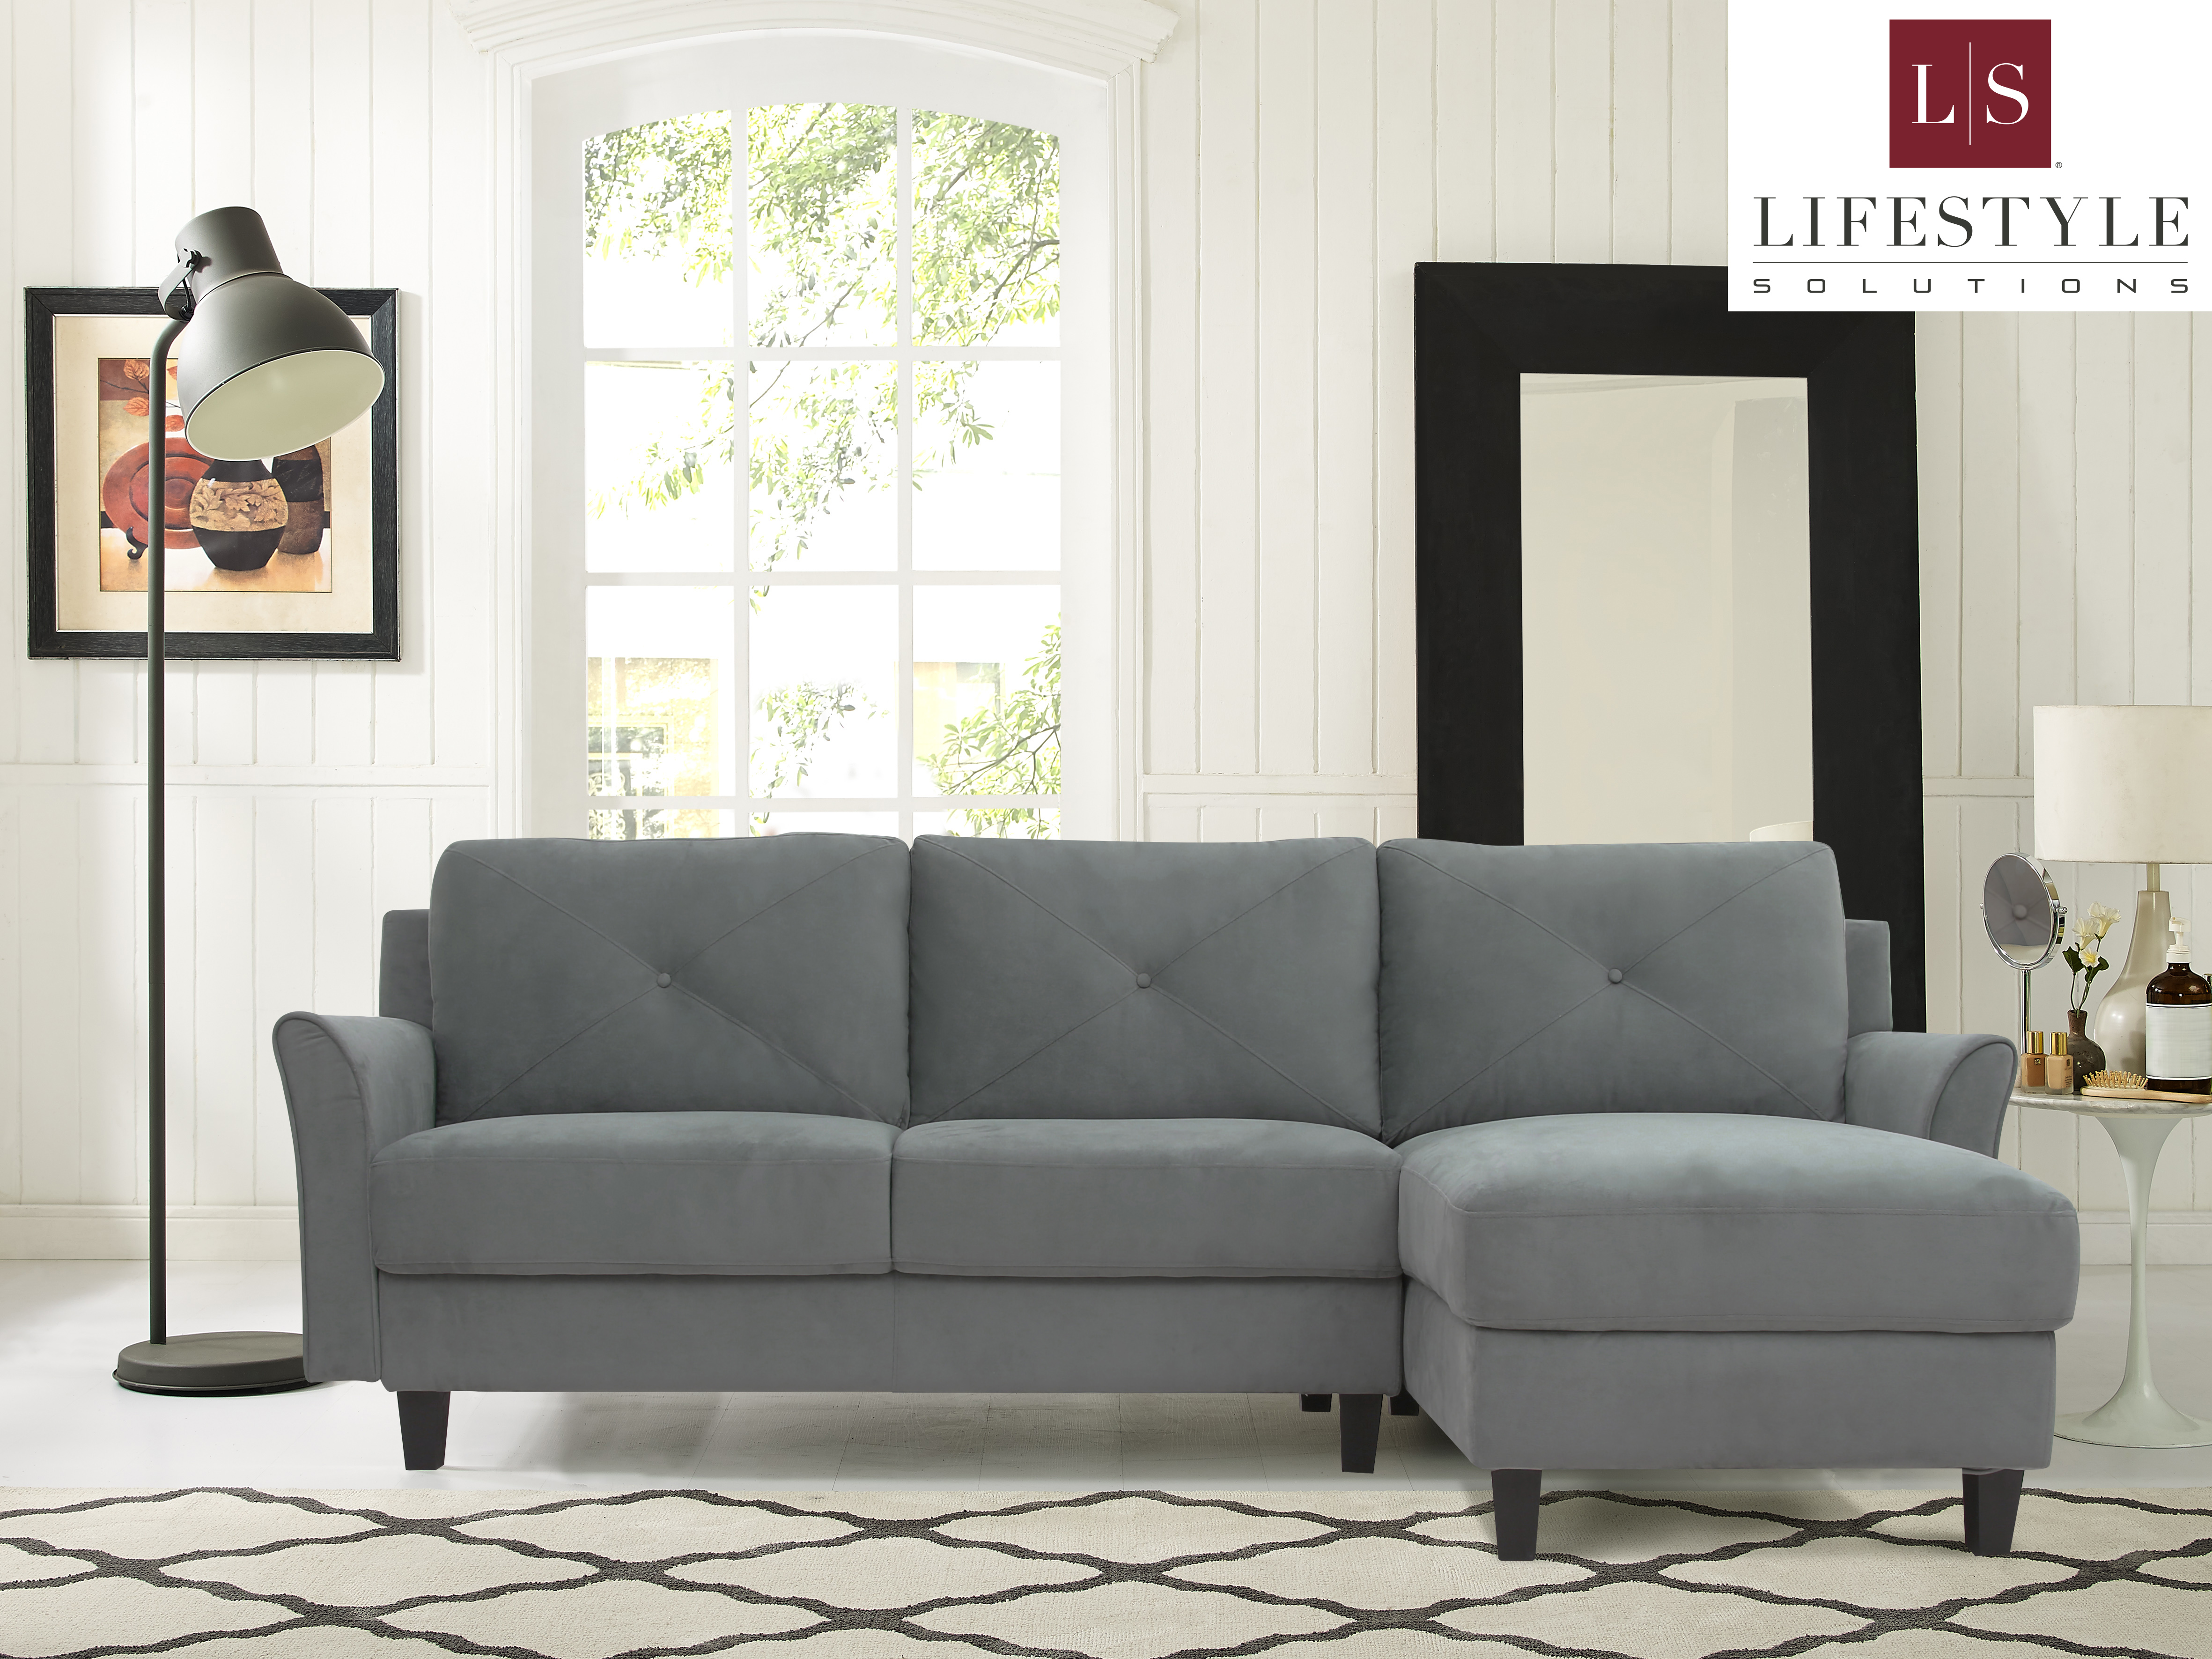 Lifestyle Solutions Taryn 3 Seat Sectional Sofa Upholstered Microfiber Fabric Curved Arms Dark Grey Walmart Com Walmart Com